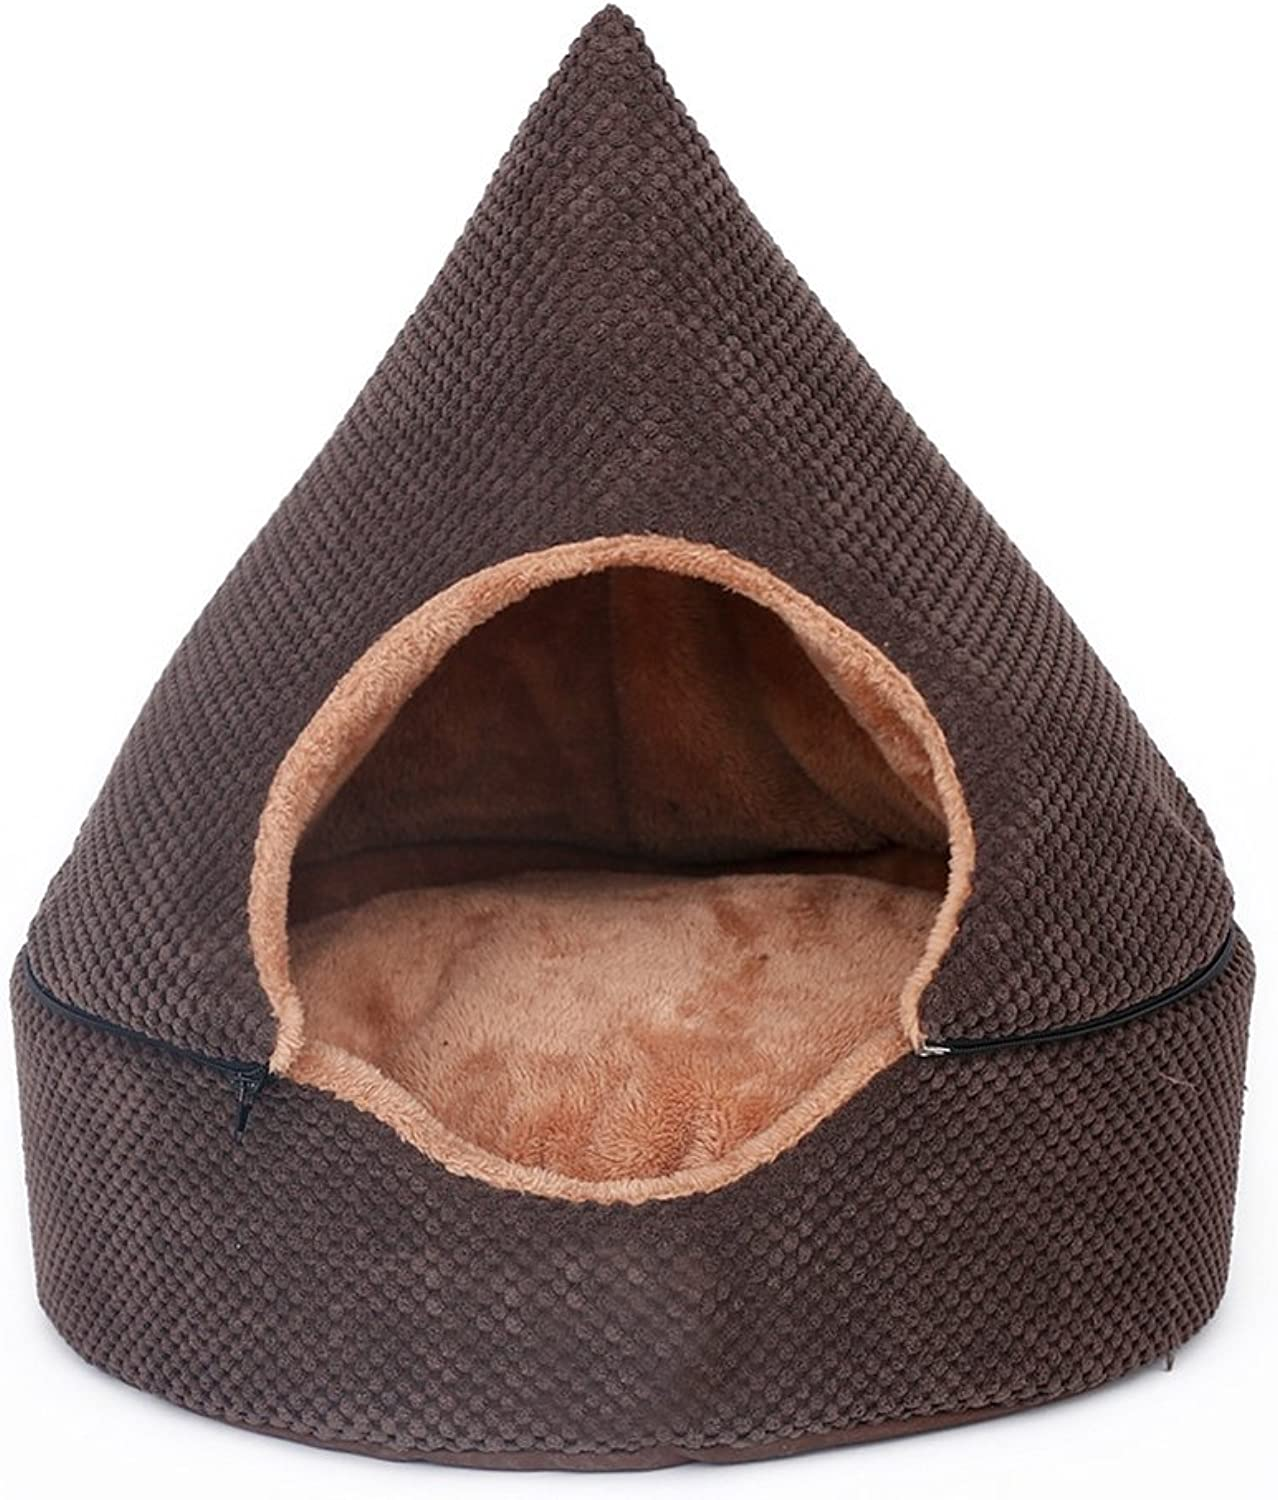 Norbi Pet Cat Small Dog Cave House Warm Sleeping Bag Tent Bed Removable Washable Bed Better Sleep(A Coffee)